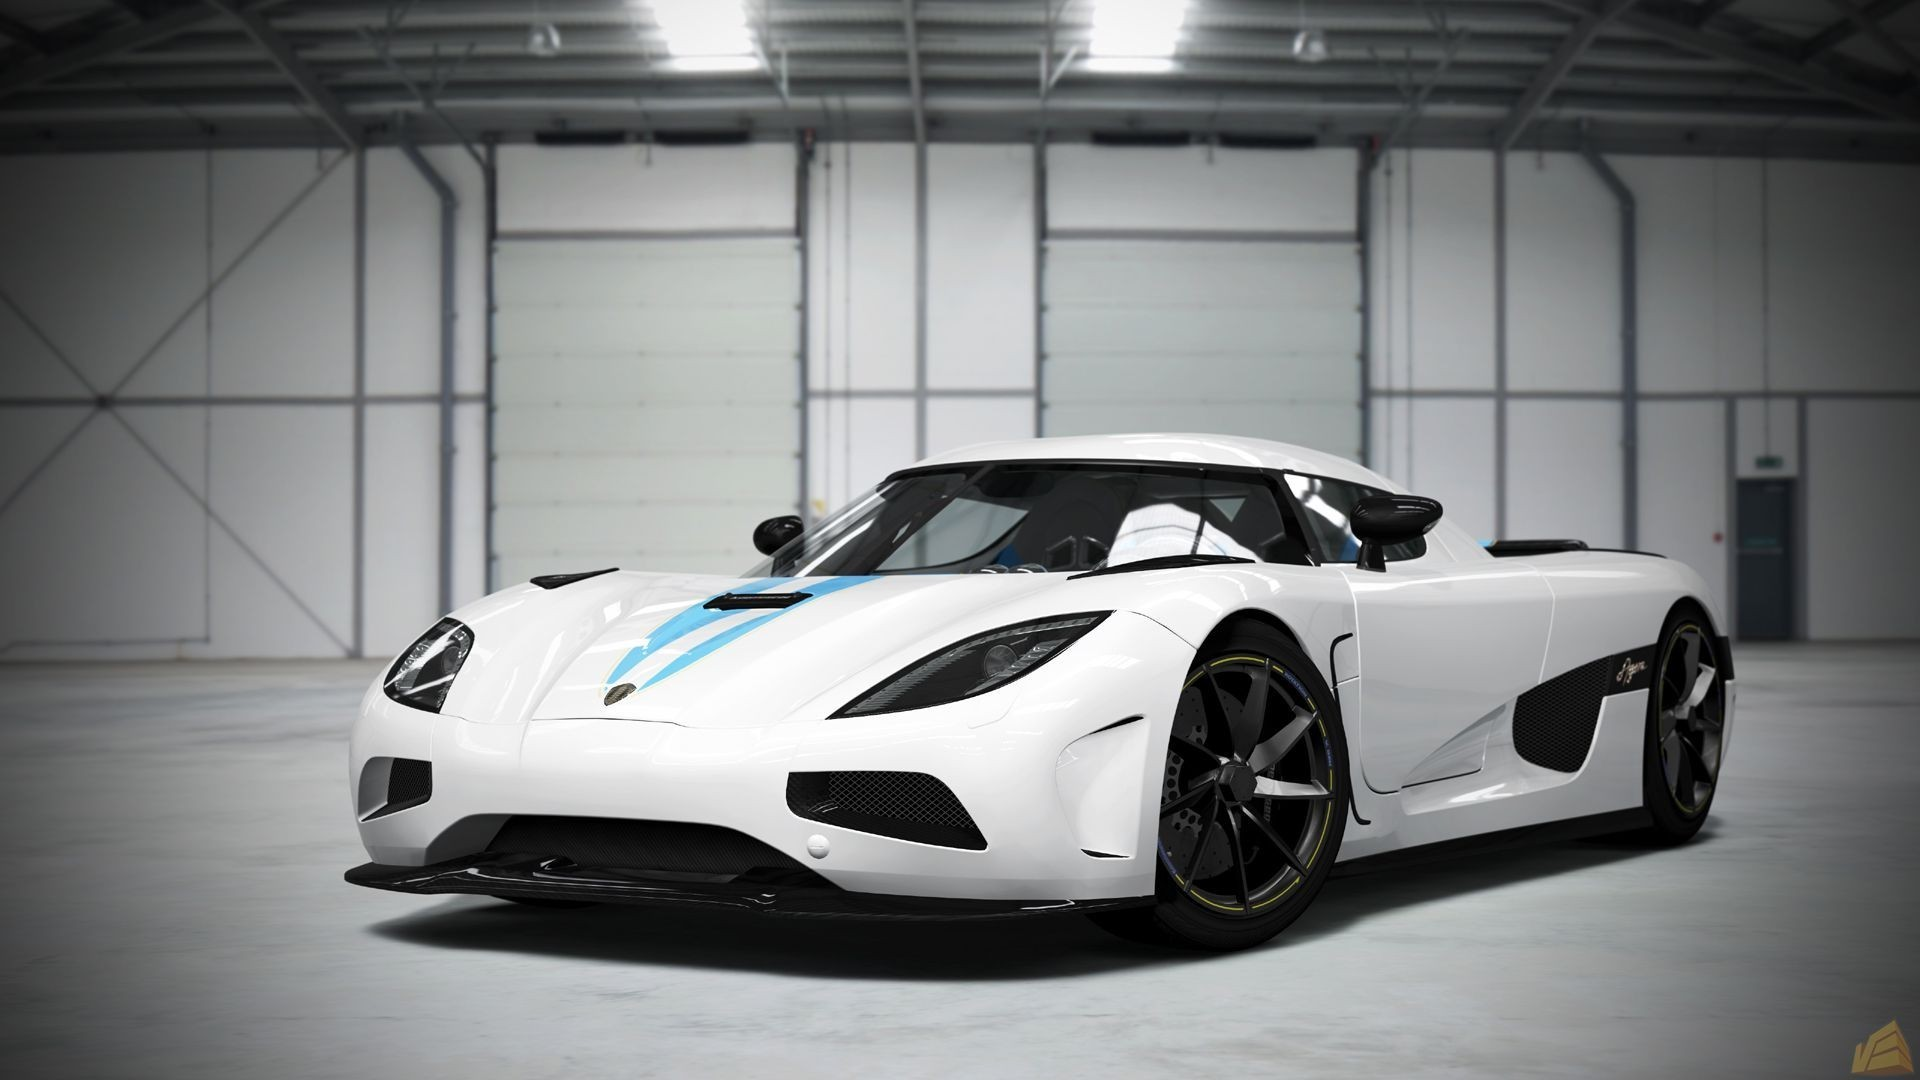 Koenigsegg Agera, Supercars Wallpapers HD / Desktop and Mobile .